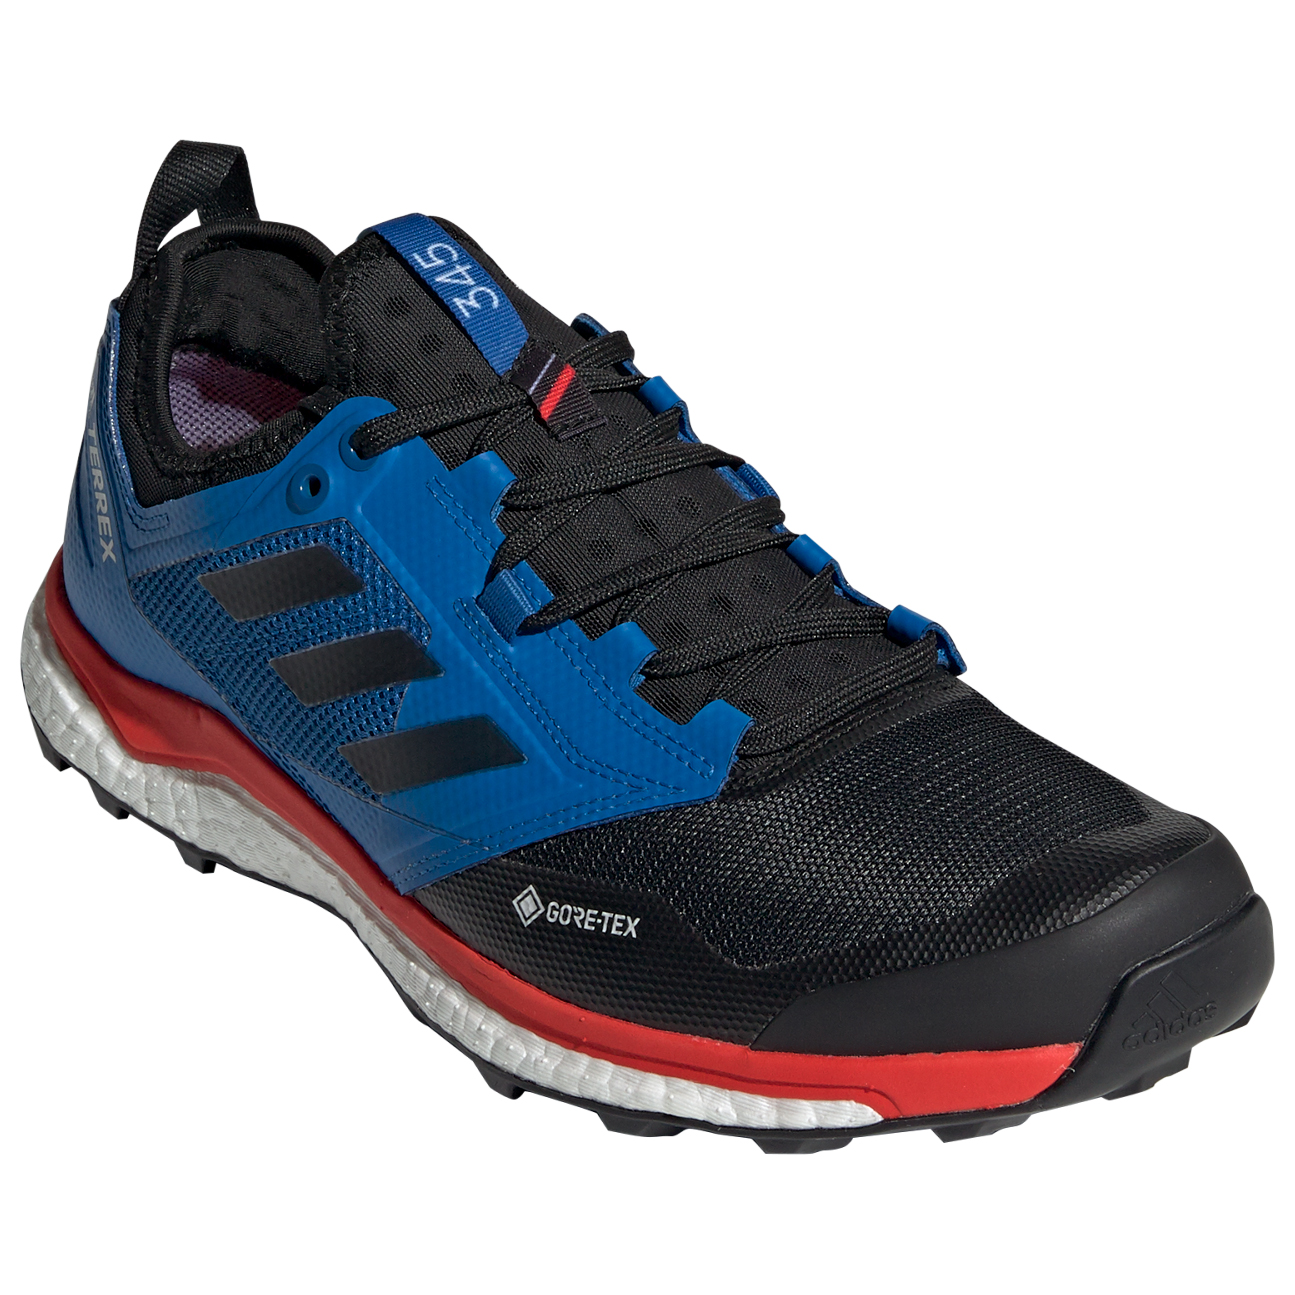 brand new 6e134 b8df1 adidas - Terrex Agravic XT GTX - Trail running shoes